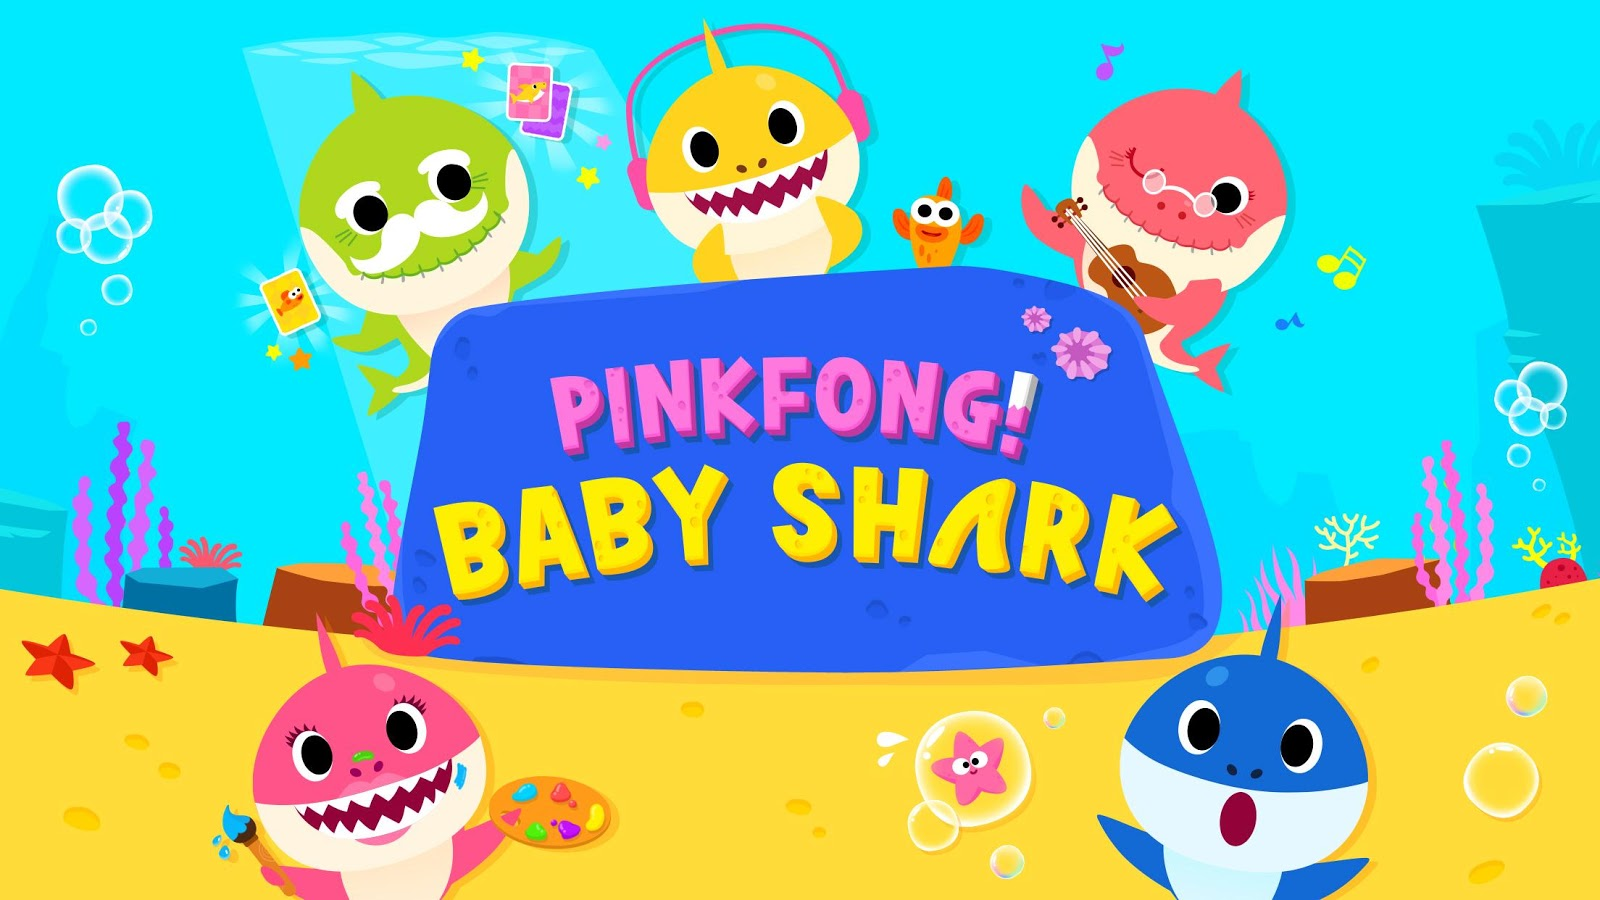 Pinkfong and Baby Shark are coming to Manila!